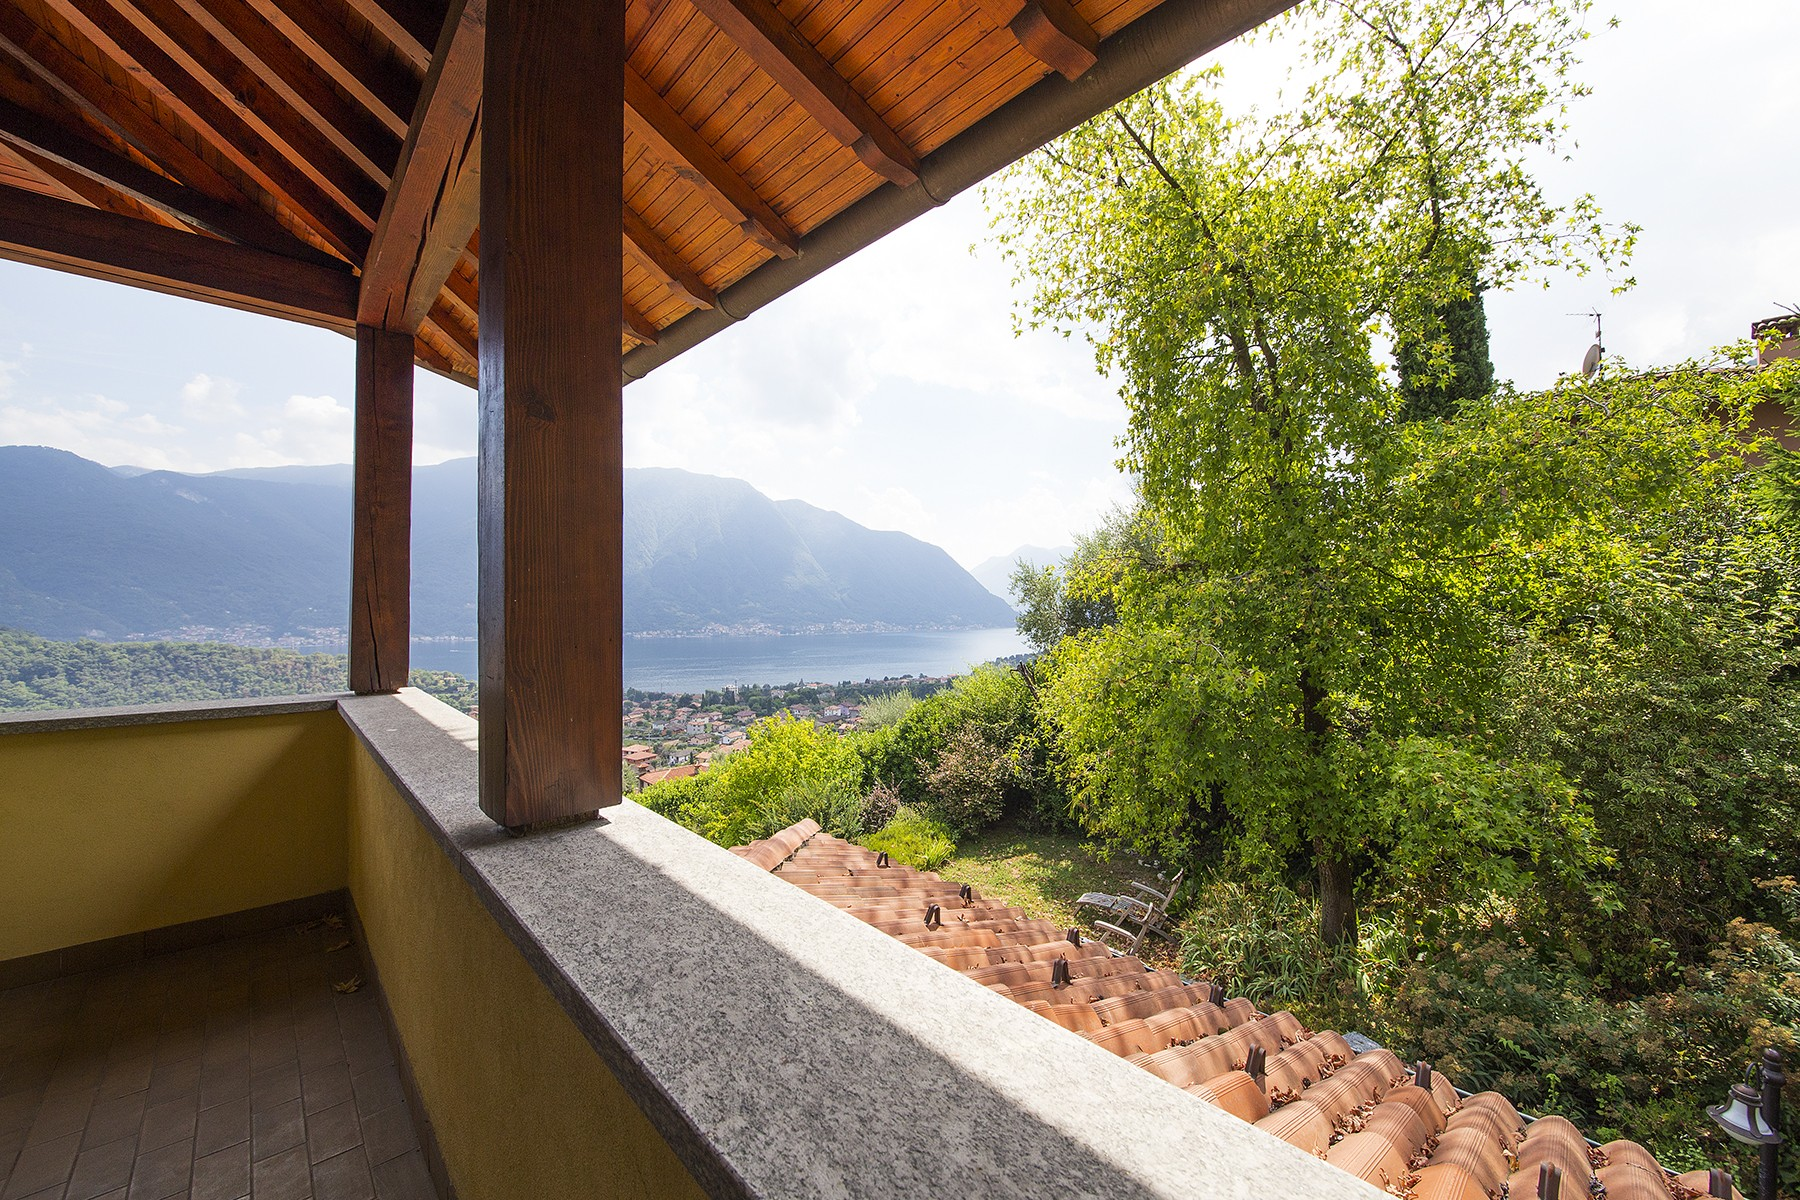 Additional photo for property listing at Grand modern villa with spectacular views of Lake Como Strada dell'Alpe Lenno, Como 22016 Italia